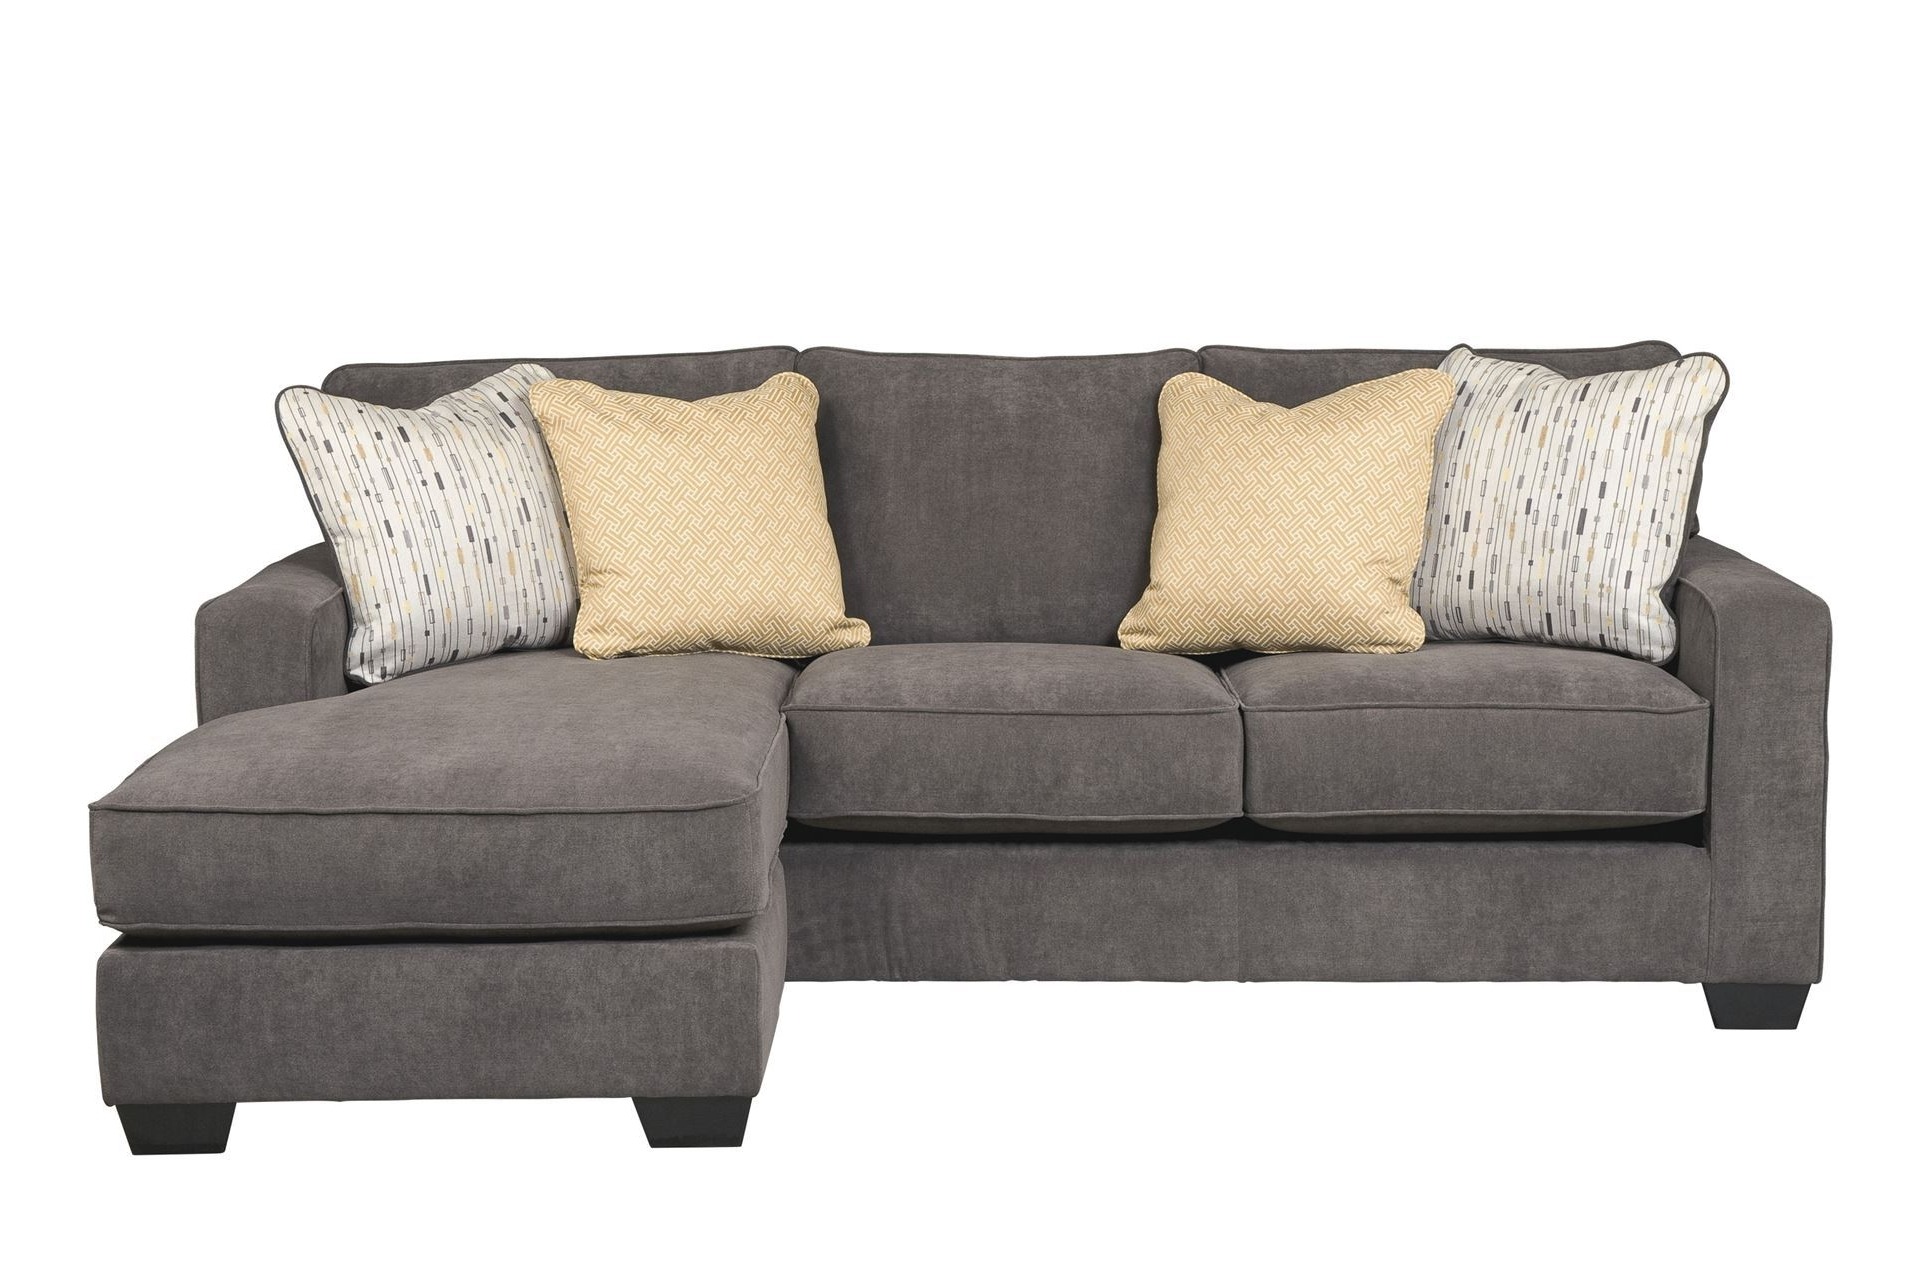 Sofa ~ Small Grey Sofa Tidafors Two Seat Sofa Hensta Grey 0240067 Within Newest Gray Chaise Sofas (View 12 of 15)